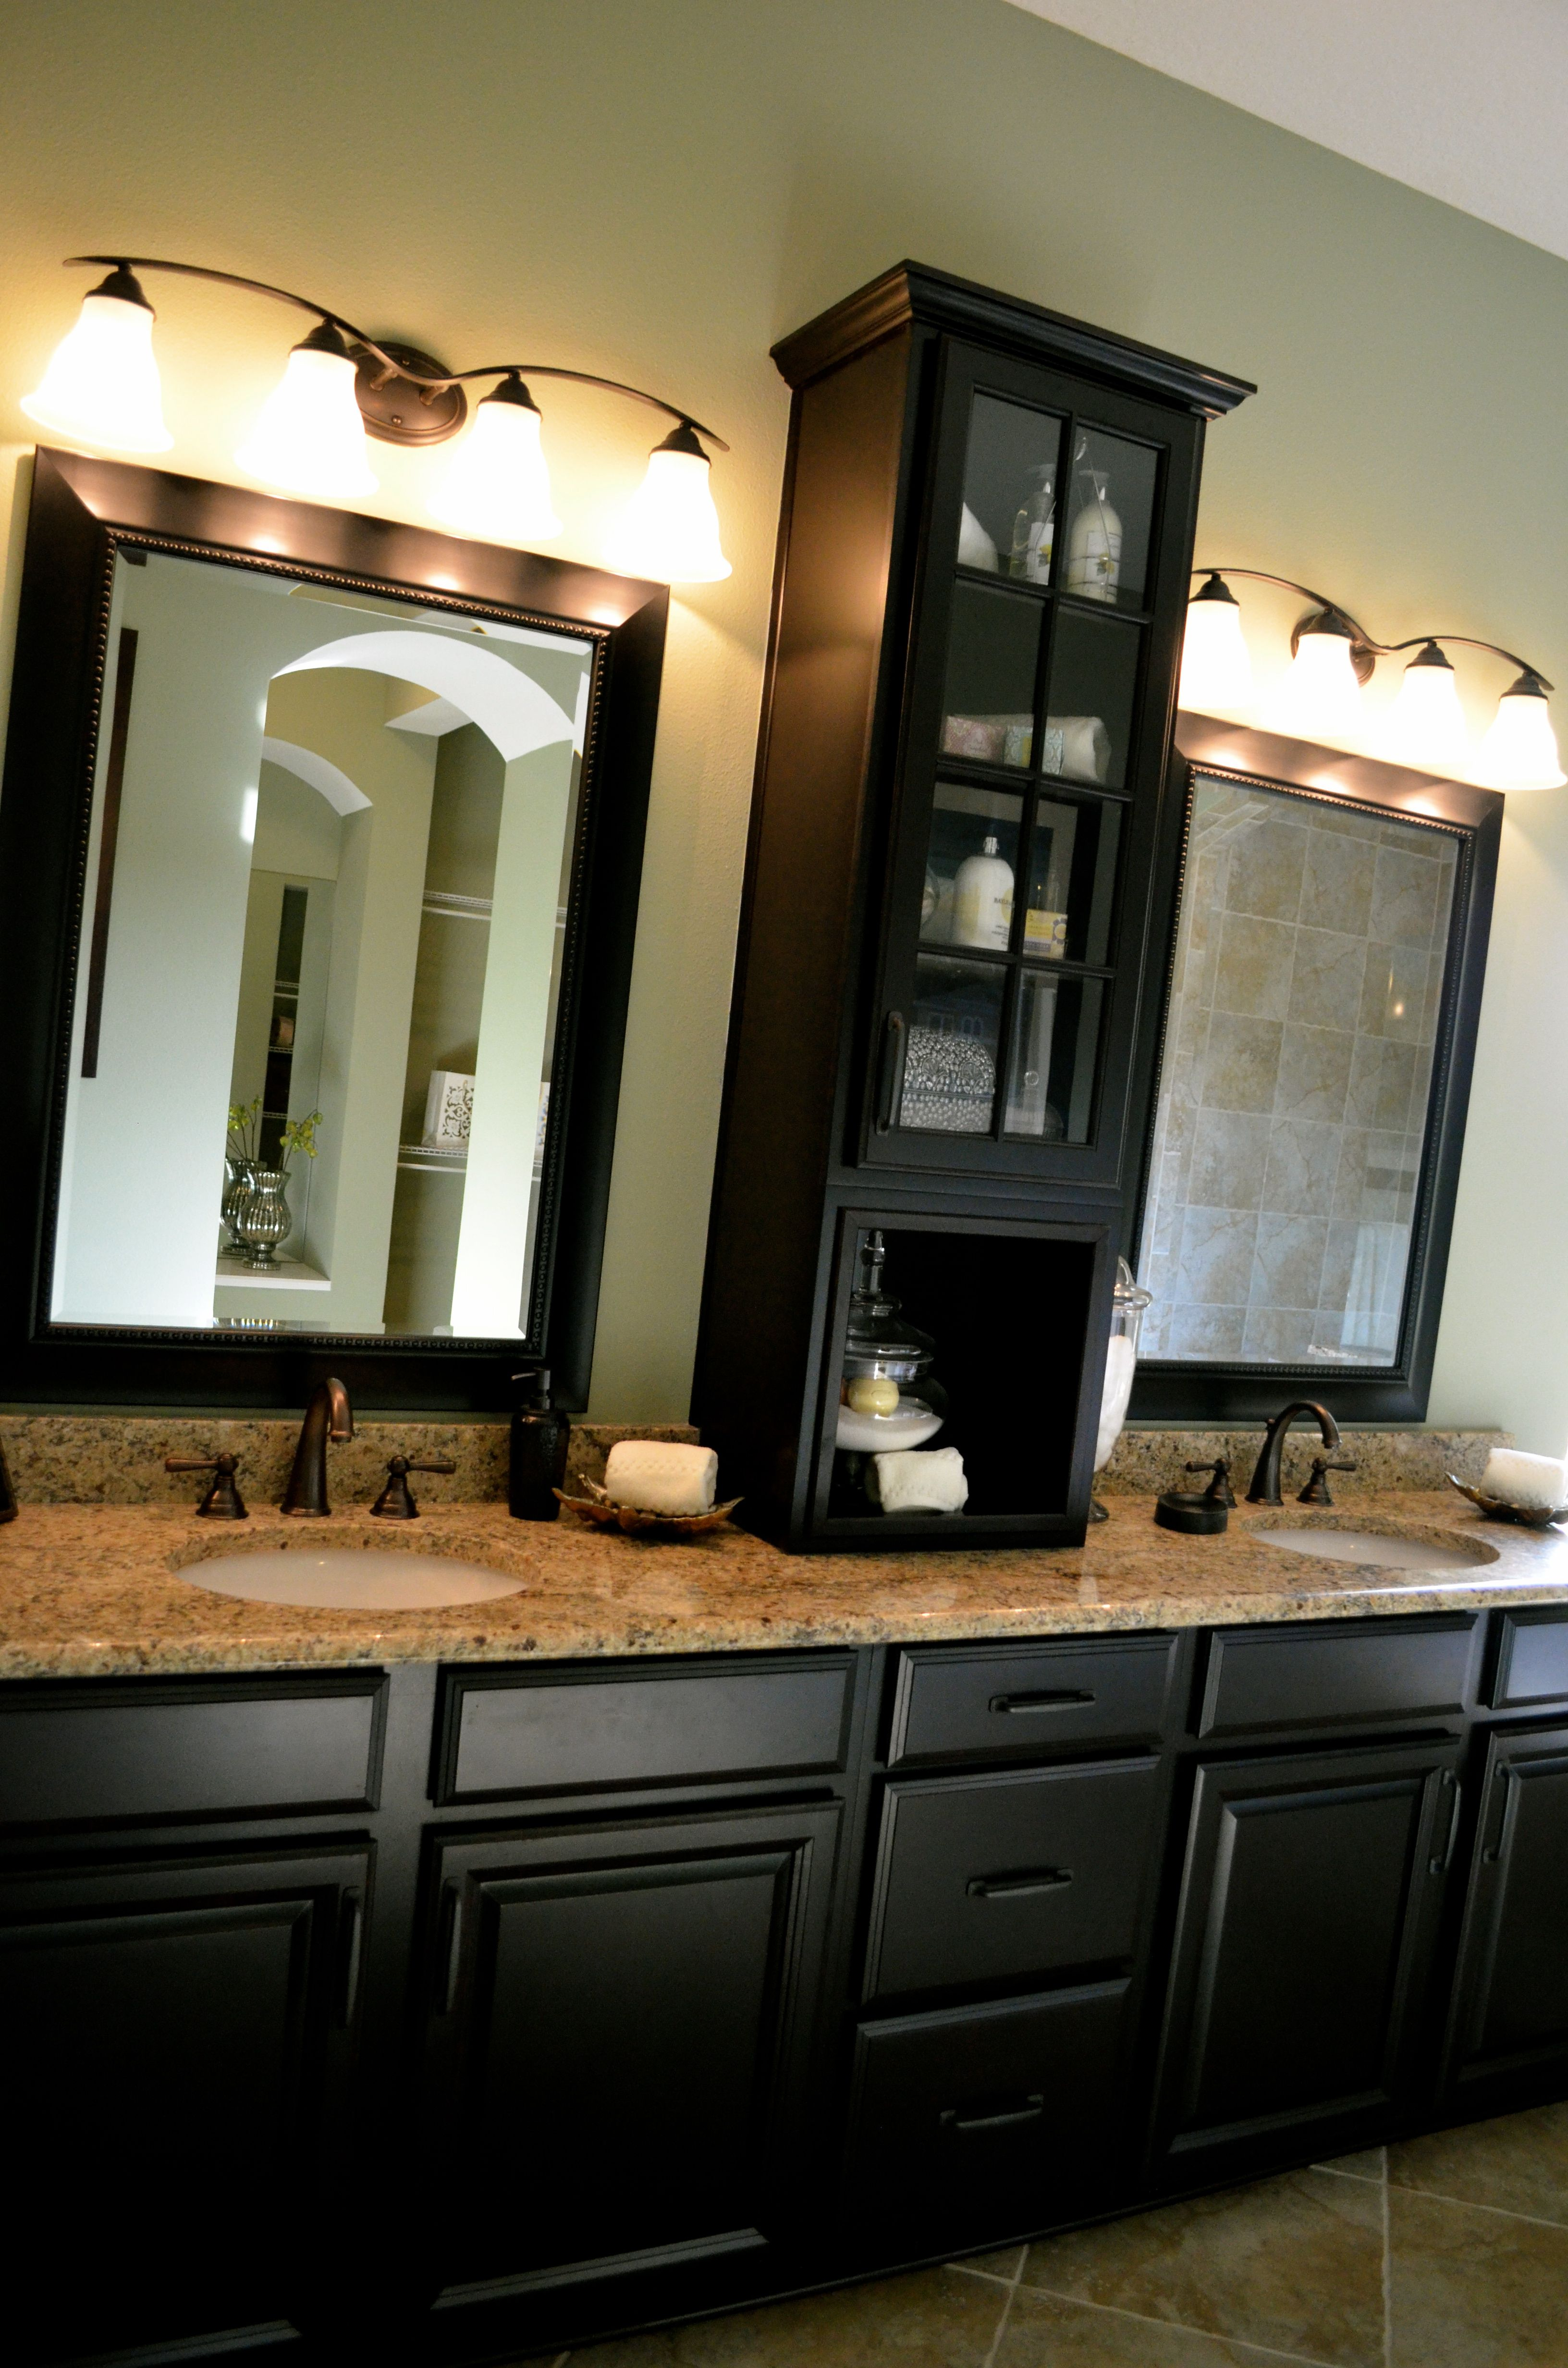 redoing bathroom%0A David Weekley Homes Model in Willowcove at Nocatee  Call            for